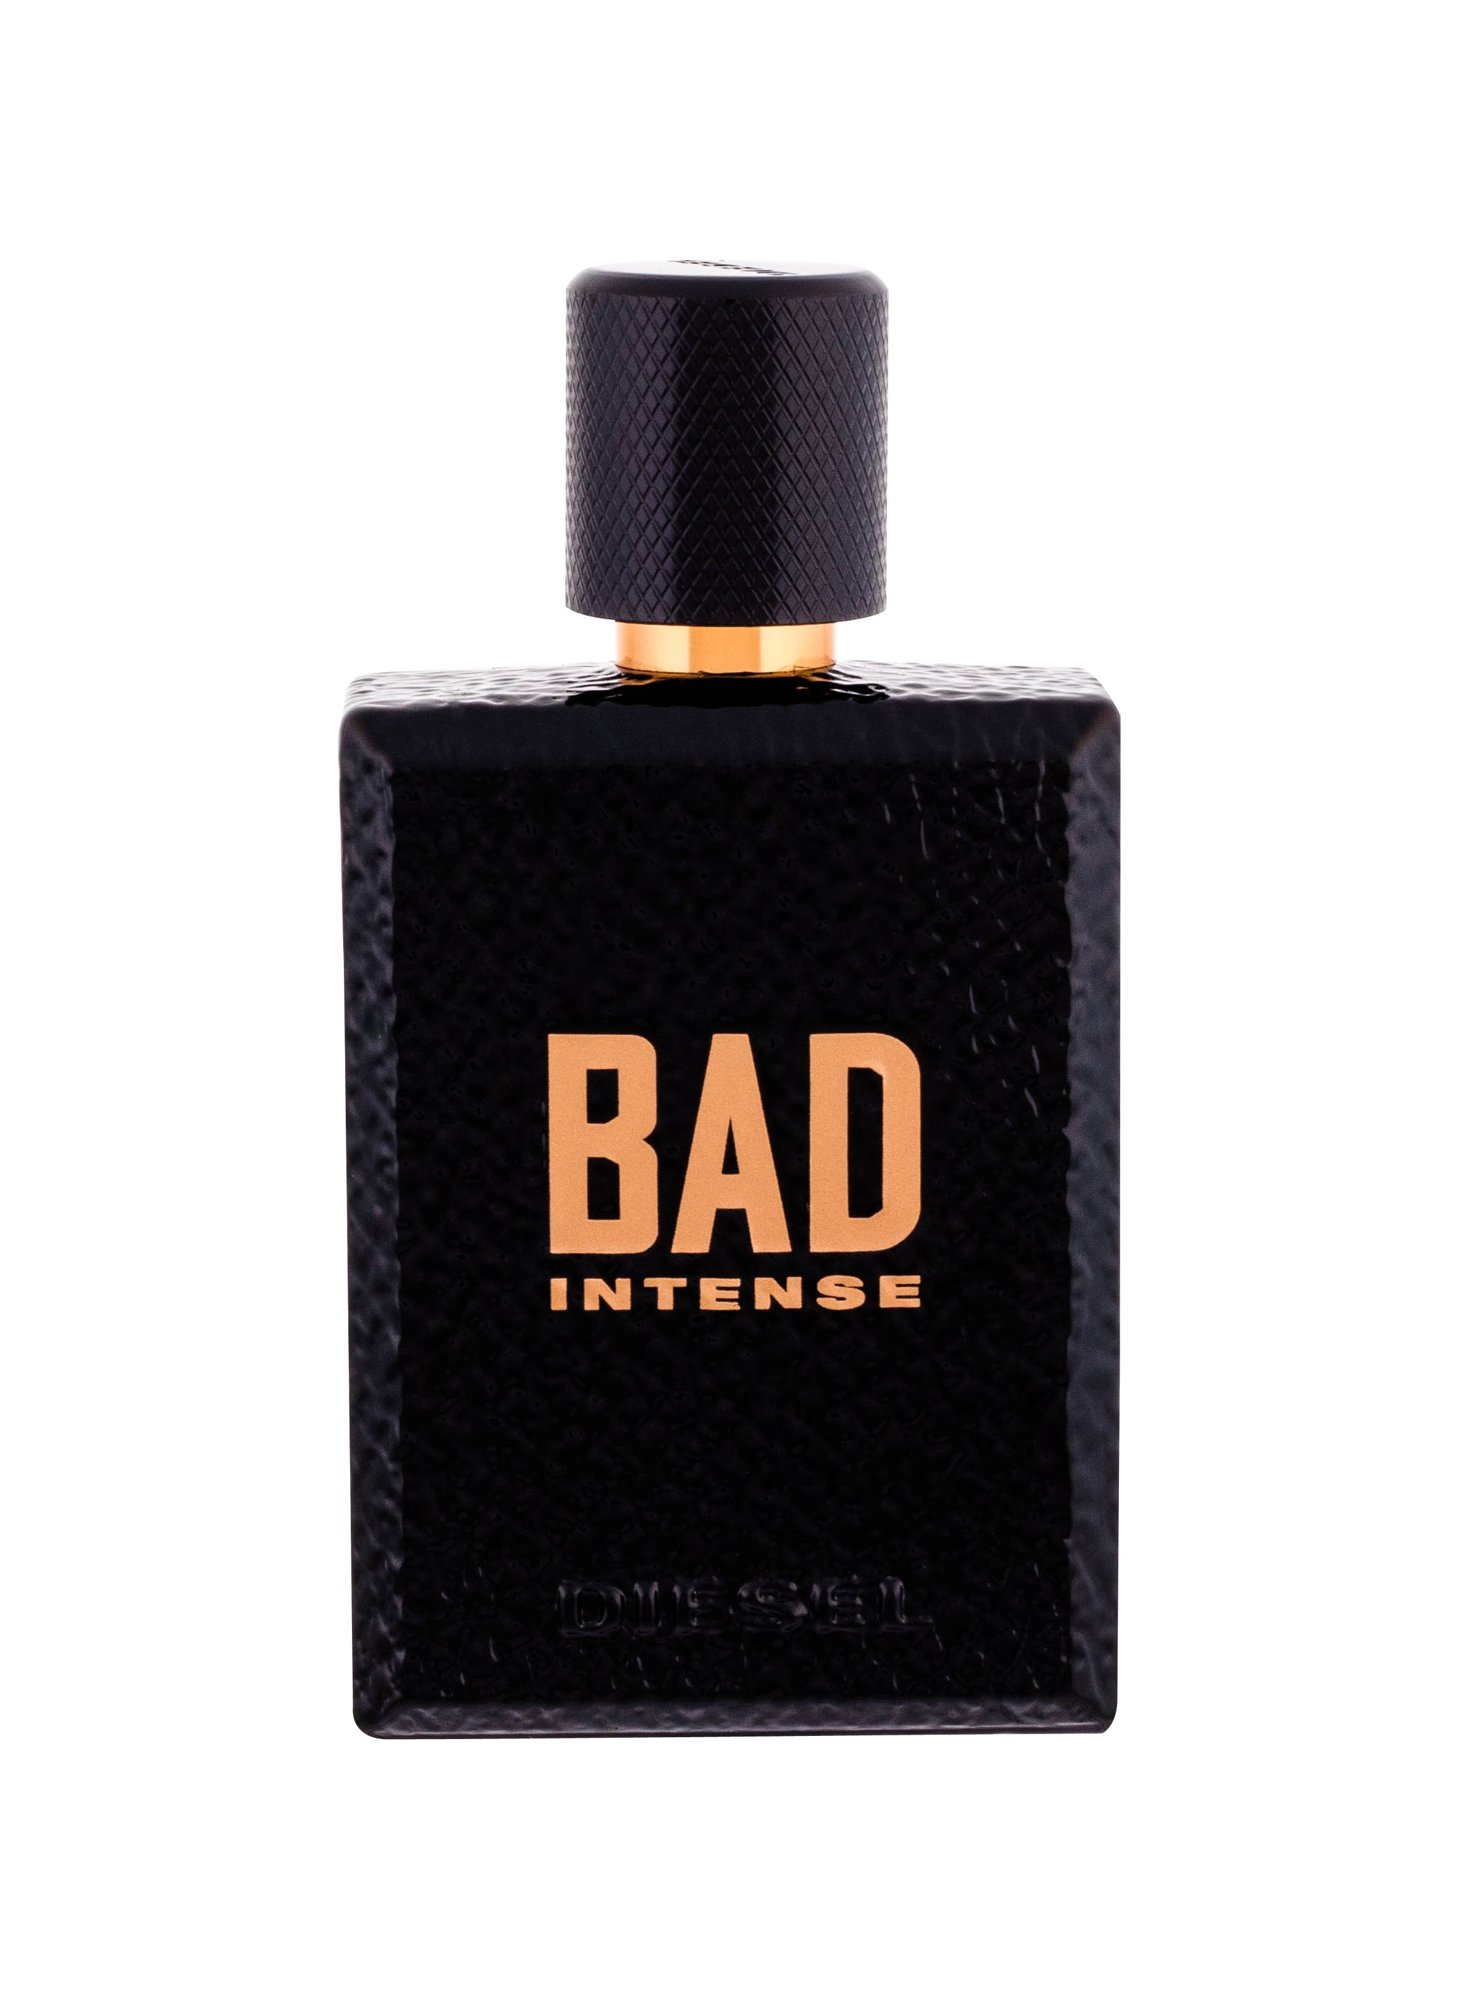 Diesel Bad Intense Eau de Parfum 75ml